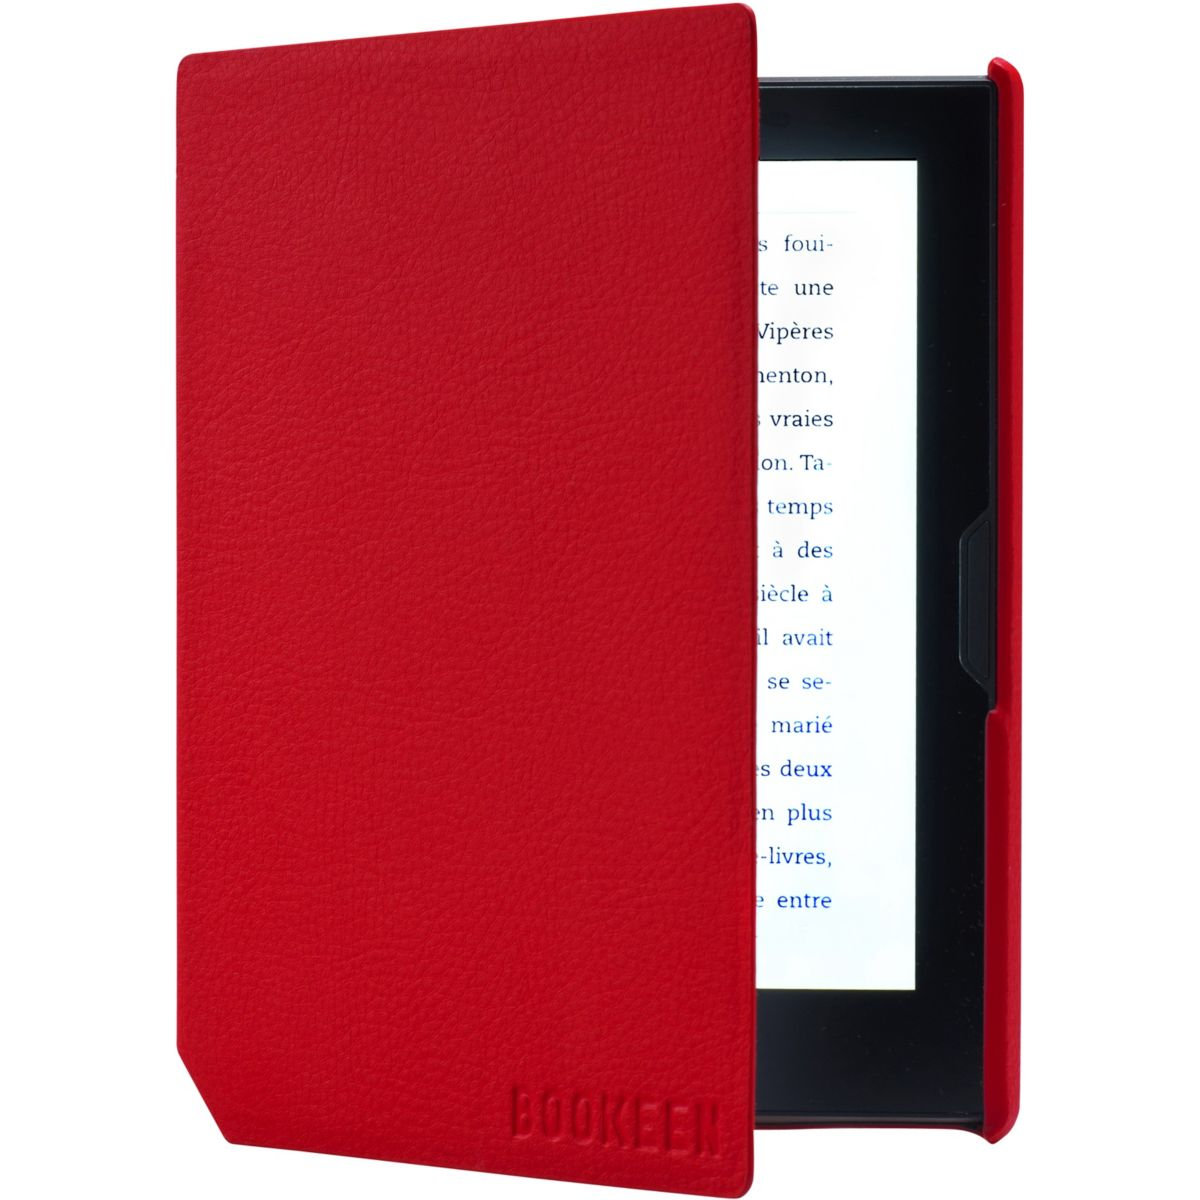 Housse BOOKEEN Cover Cybook Muse rouge vermillon